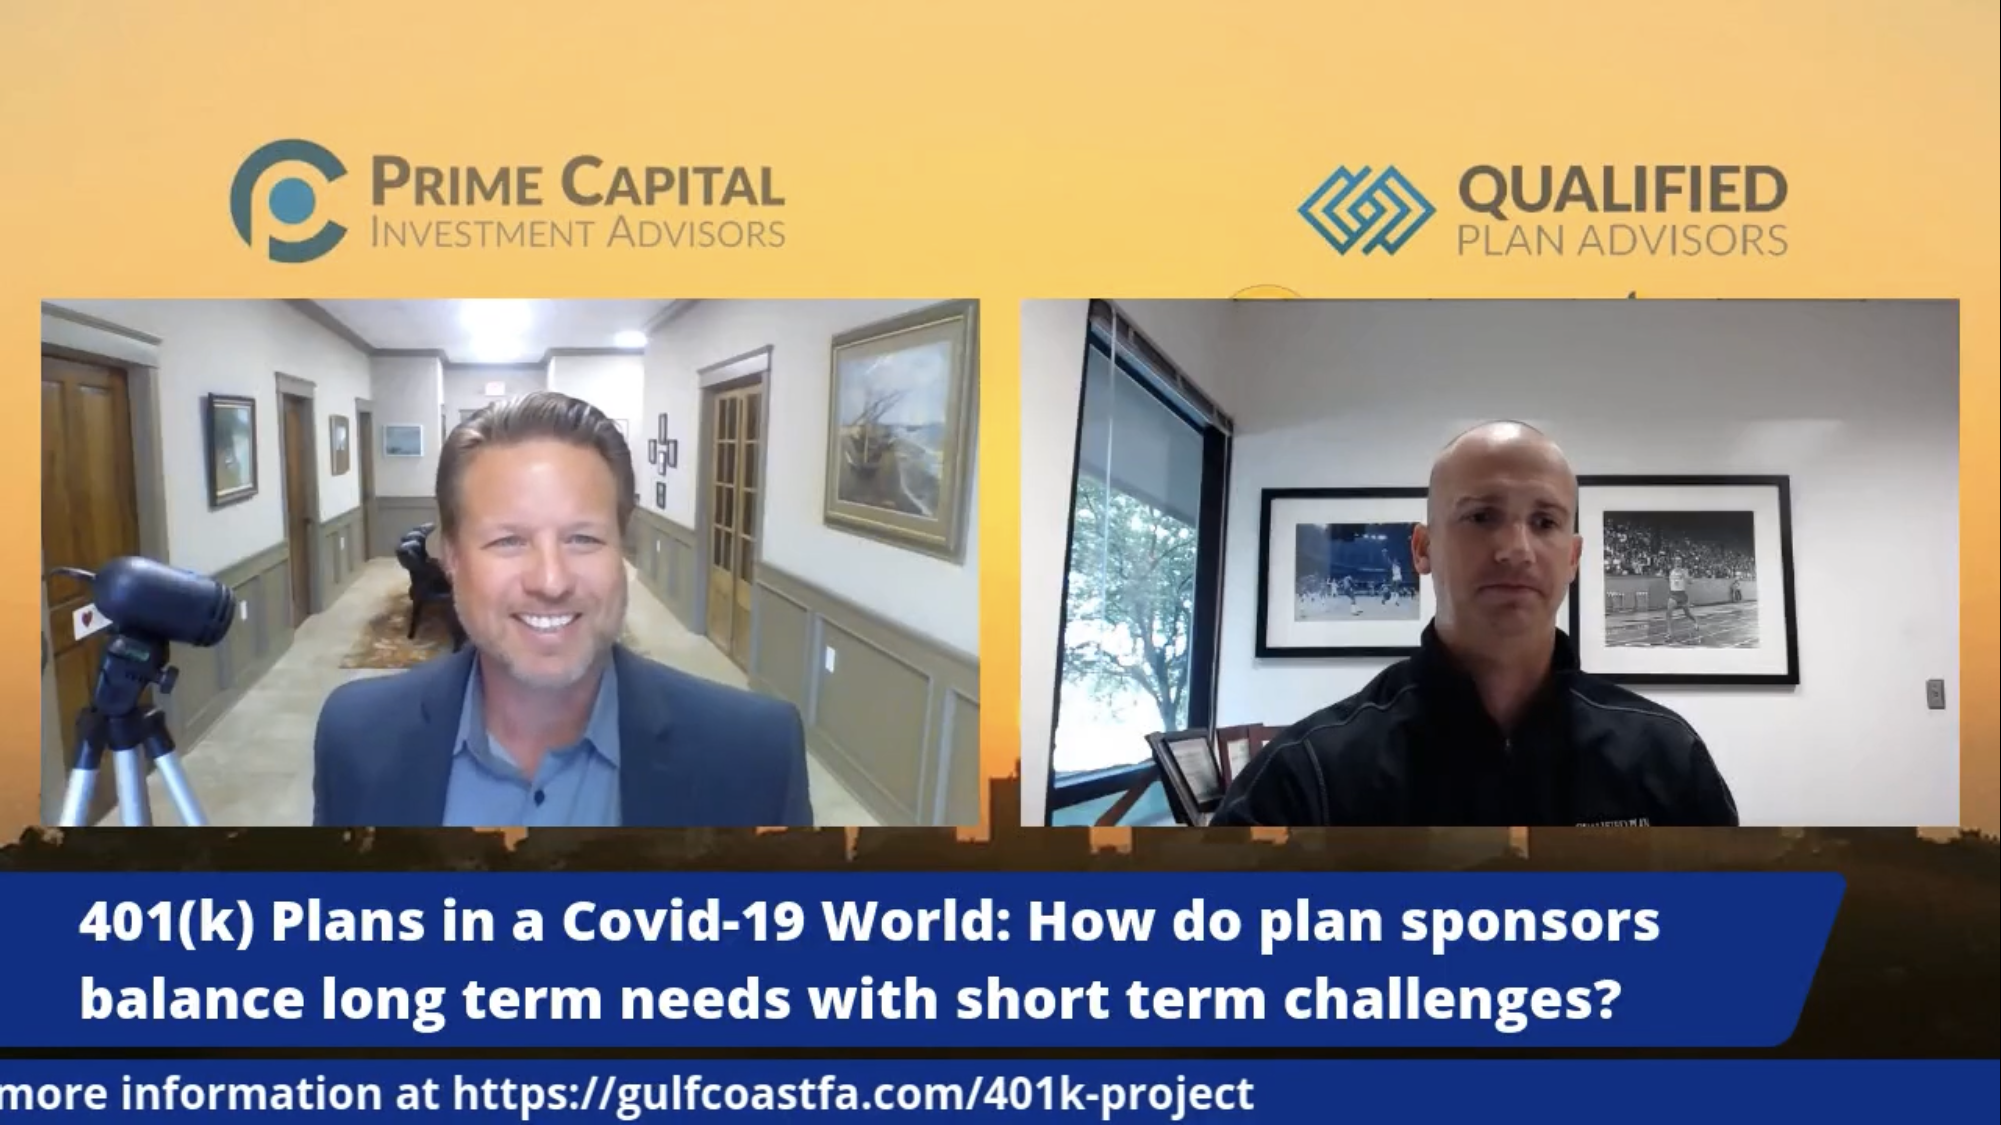 How do plan sponsors & business owners balance long term needs with short term challenges during Covid? Thumbnail